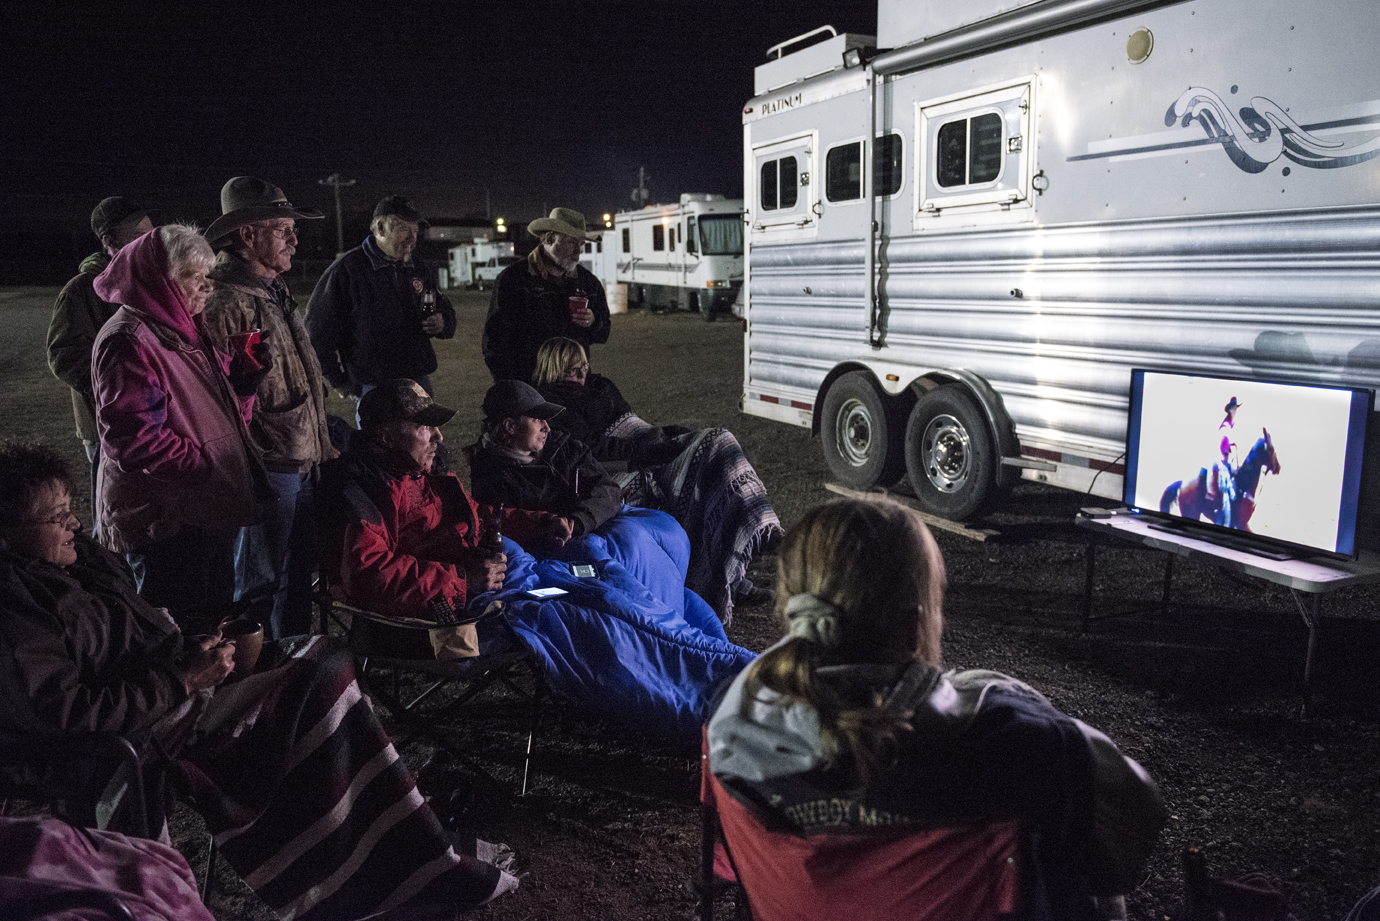 After a long day at the fun shootout, the group gathers outside one of the trailers to have a few drinks and watch the livestream of the Cowboy Mounted Shooting Association World Finals that were happening in Texas that weekend.